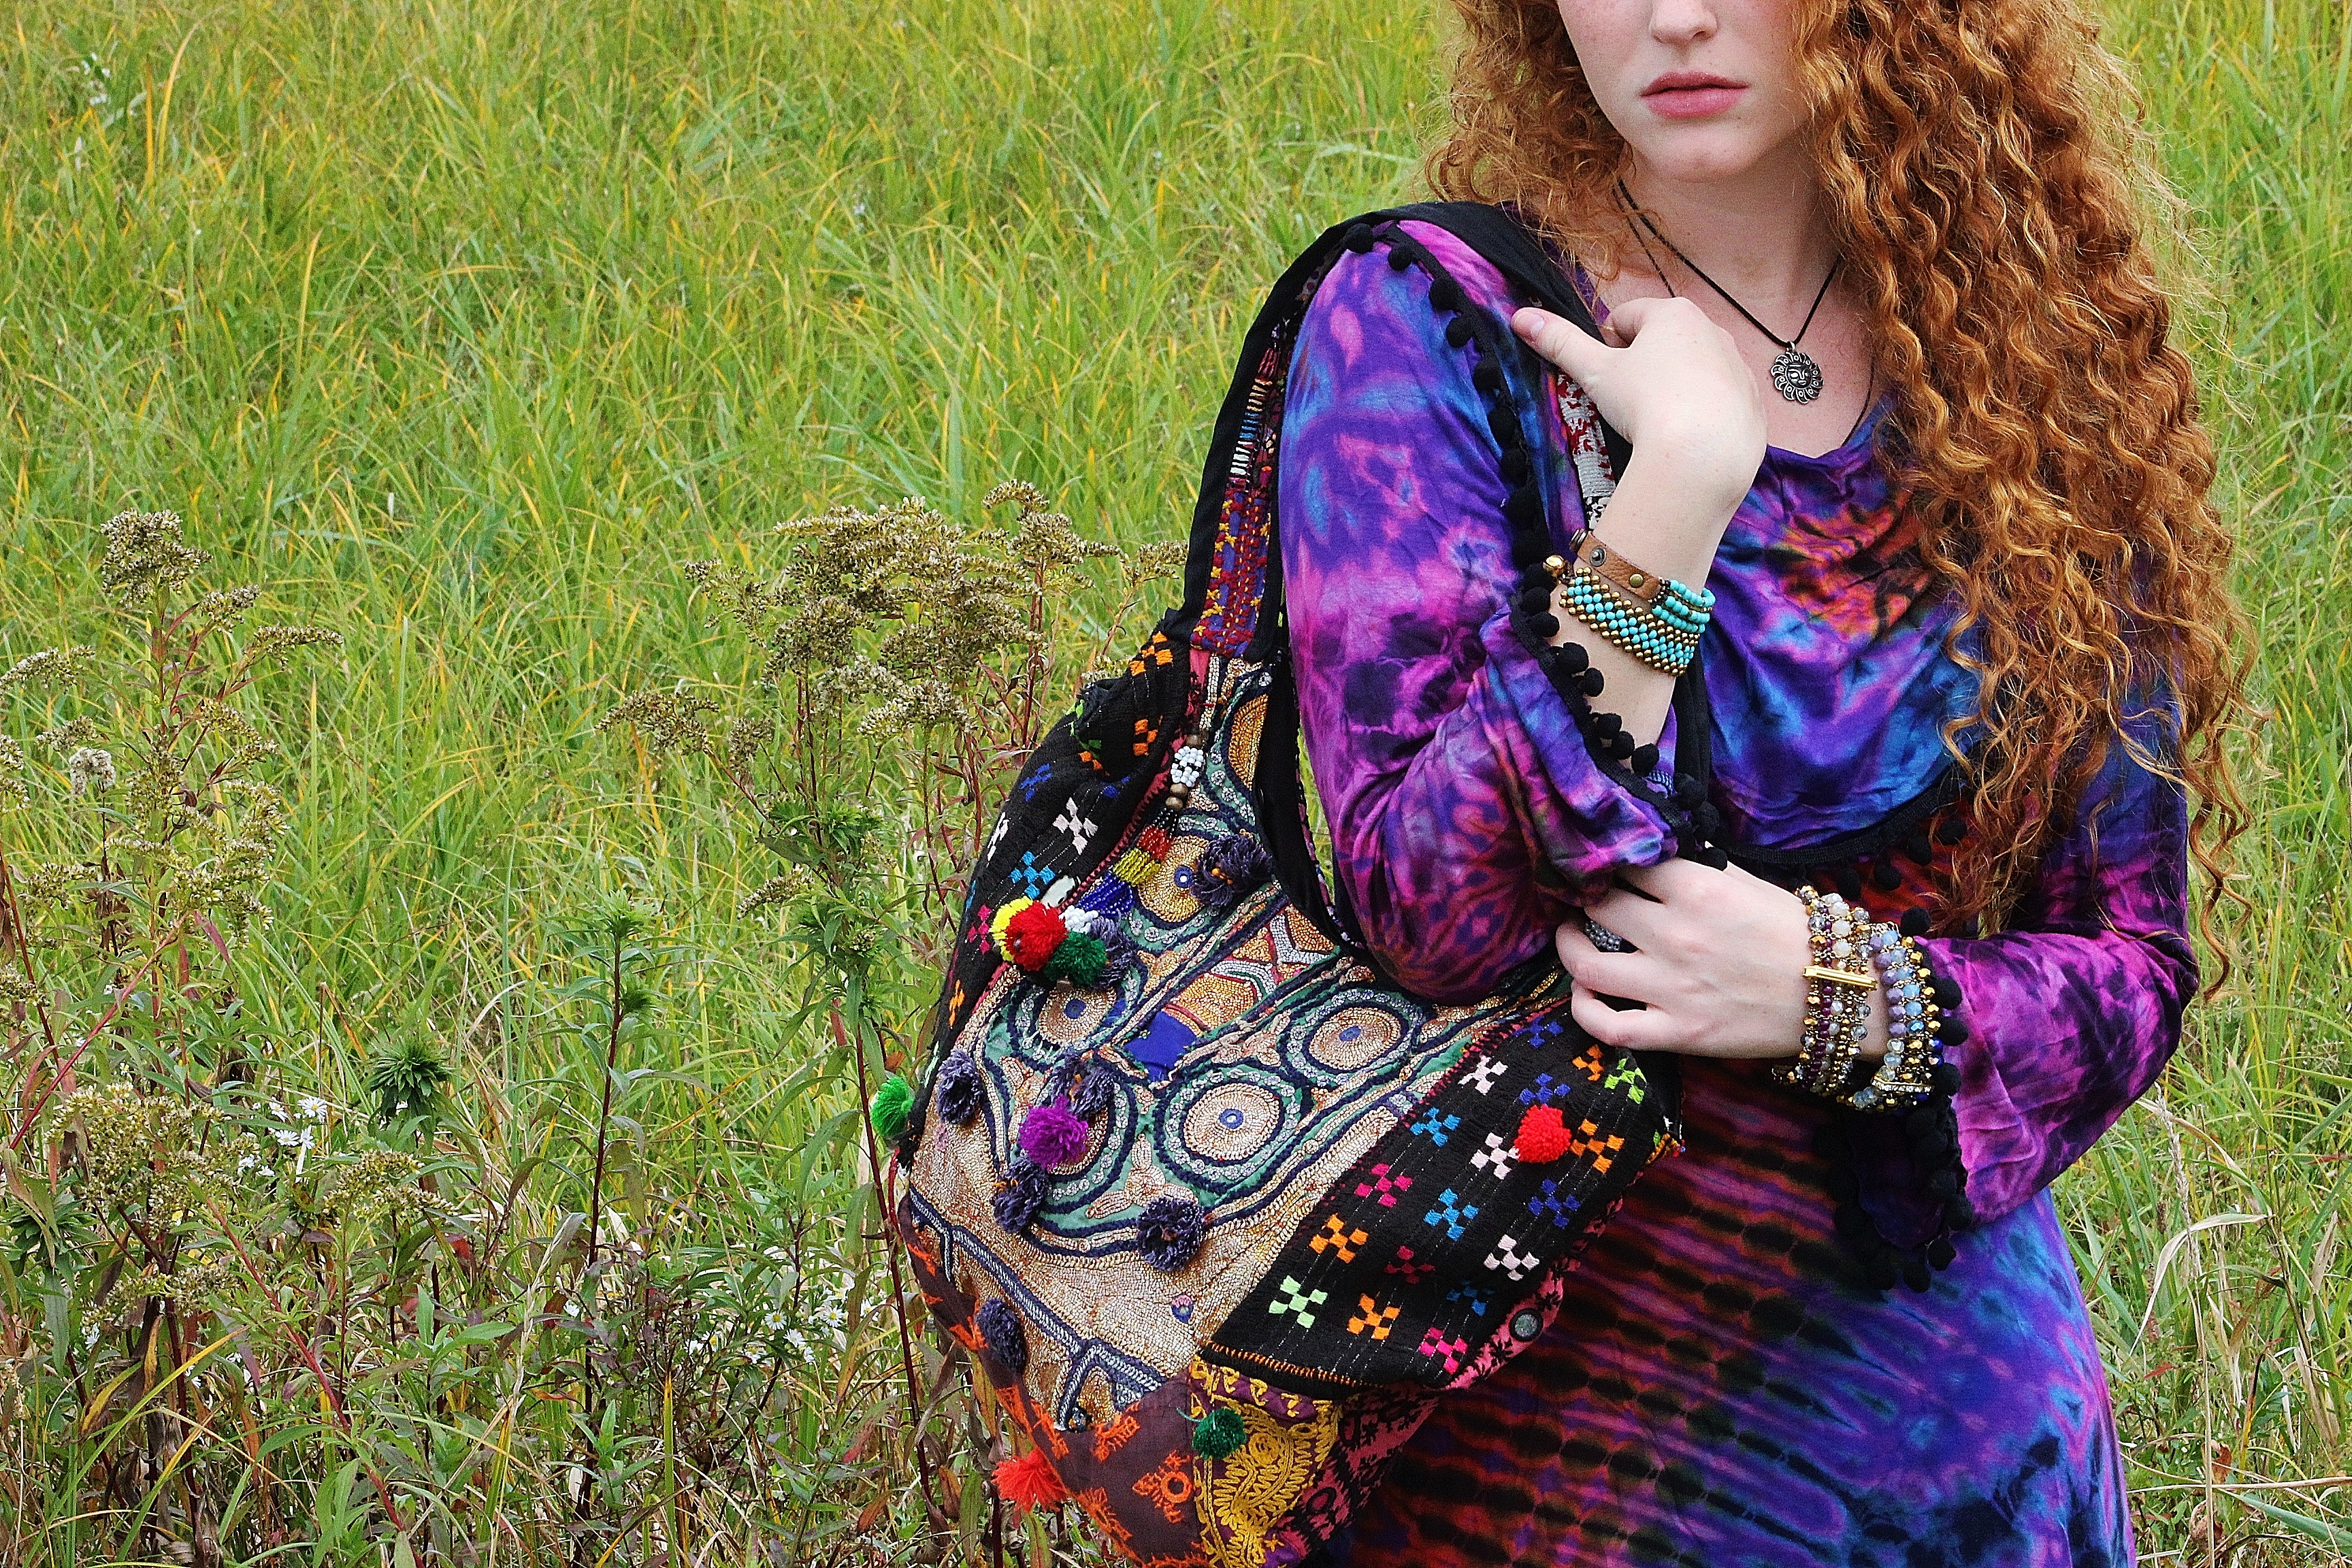 You searched for: blueberry clothing! Etsy is the home to thousands of handmade, vintage, and one-of-a-kind products and gifts related to your search. No matter what you're looking for or where you are in the world, our global marketplace of sellers can help you find unique and affordable options. Let's get started!